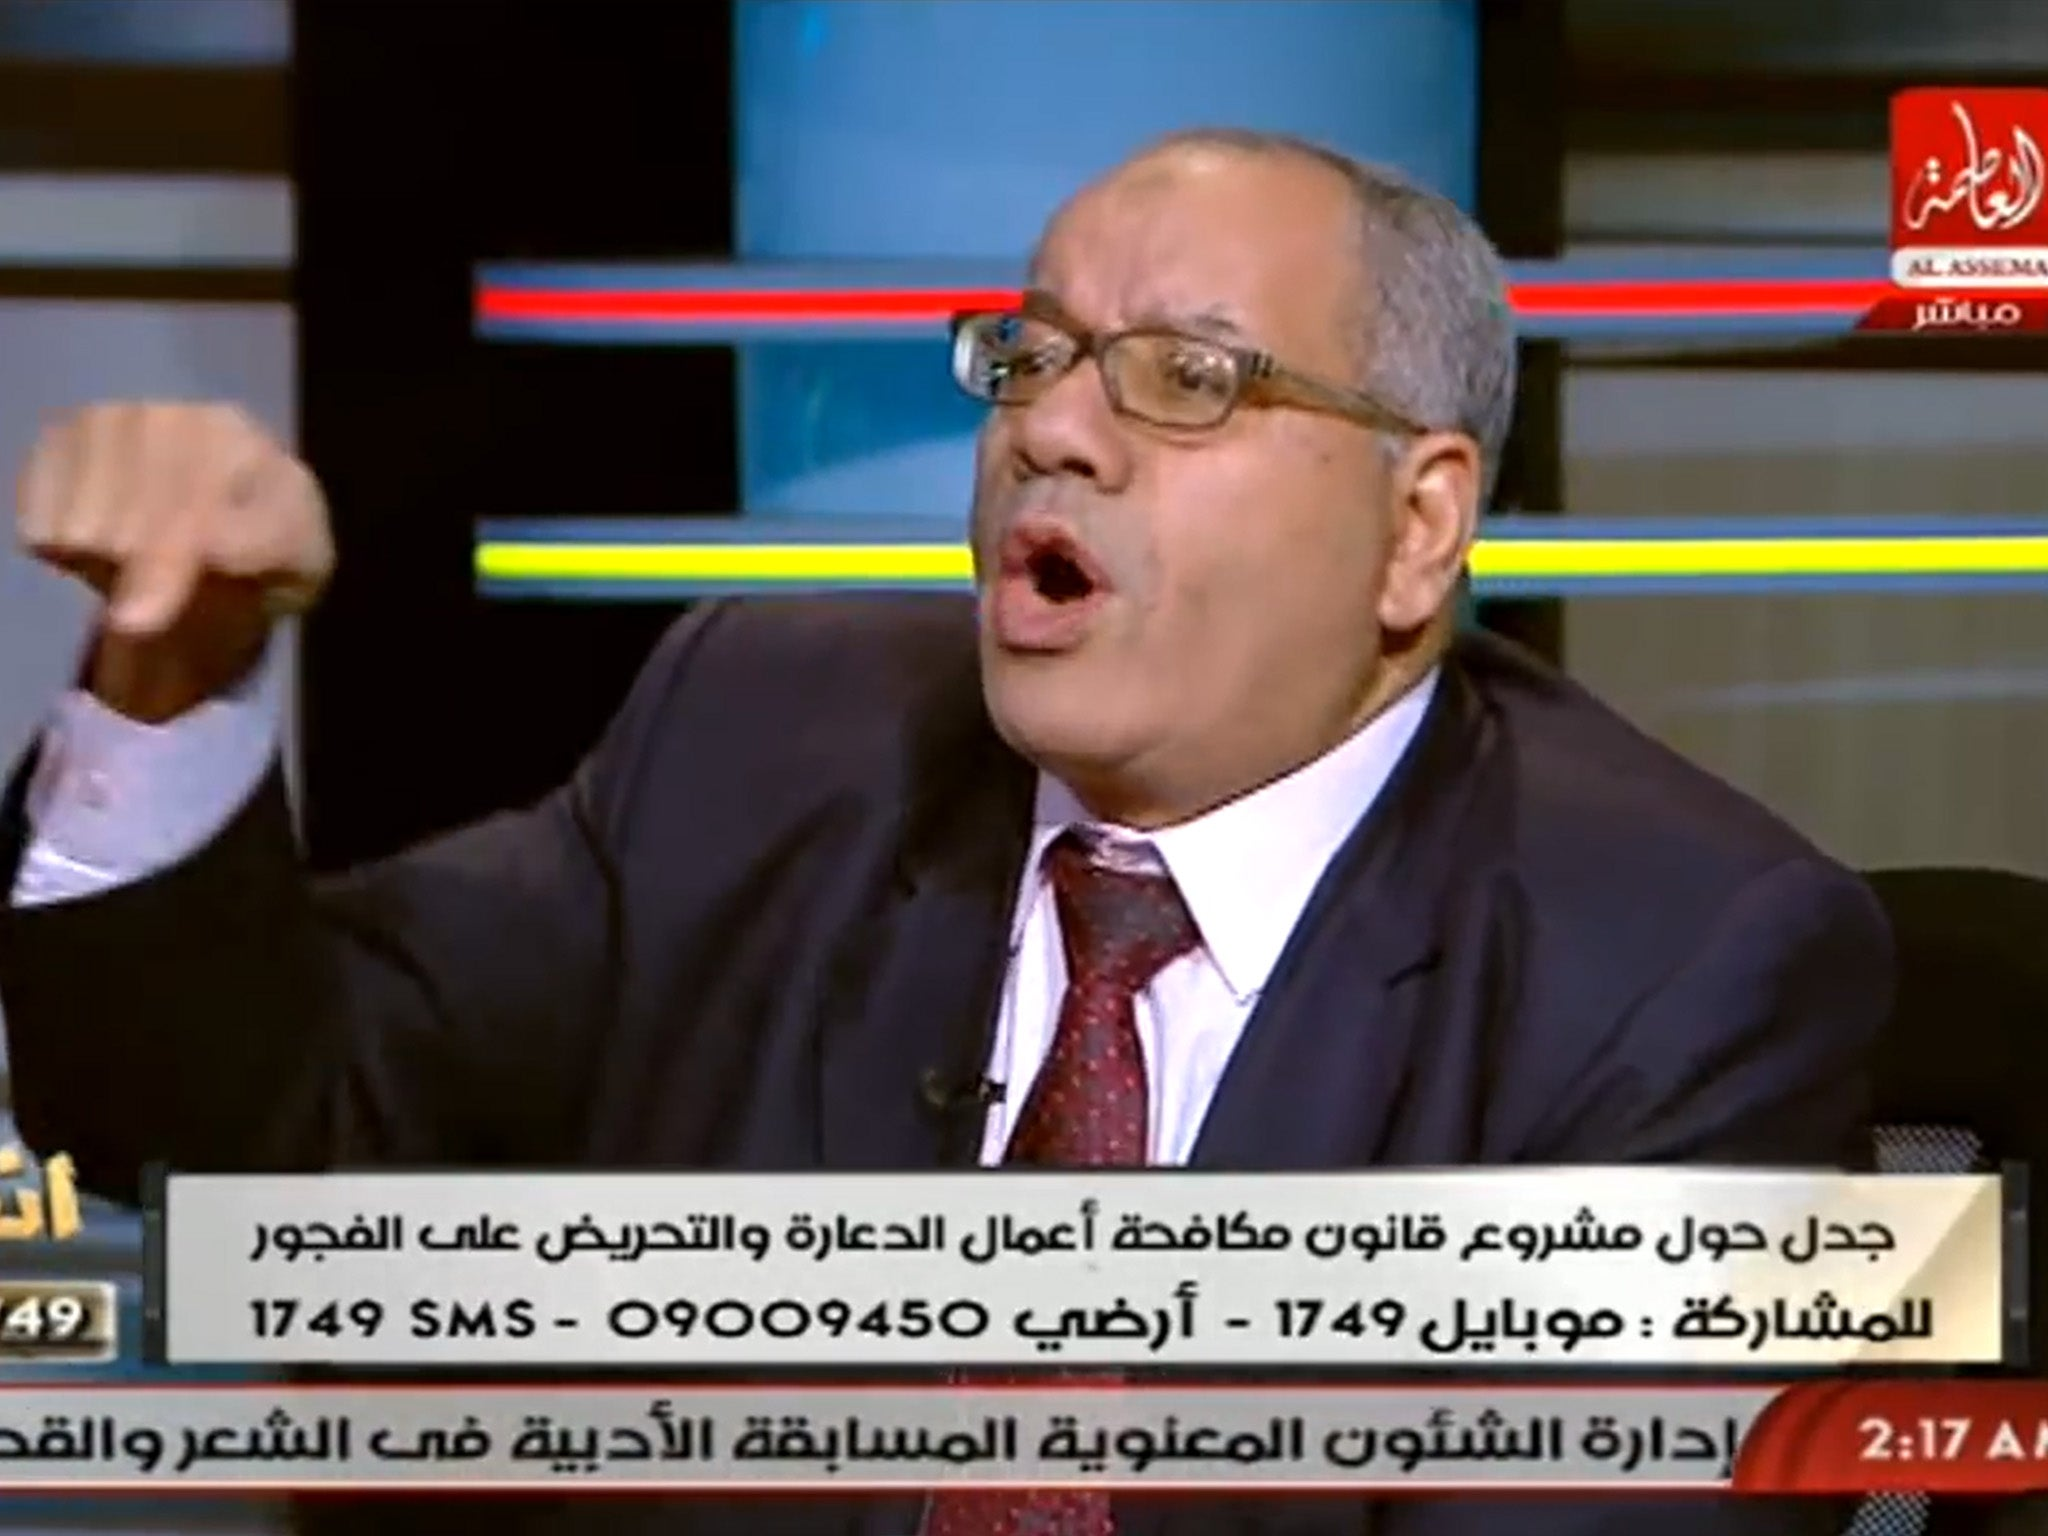 Egyptian lawyer says it's a national duty to rape girls who wear revealing clothing like ripped jeans